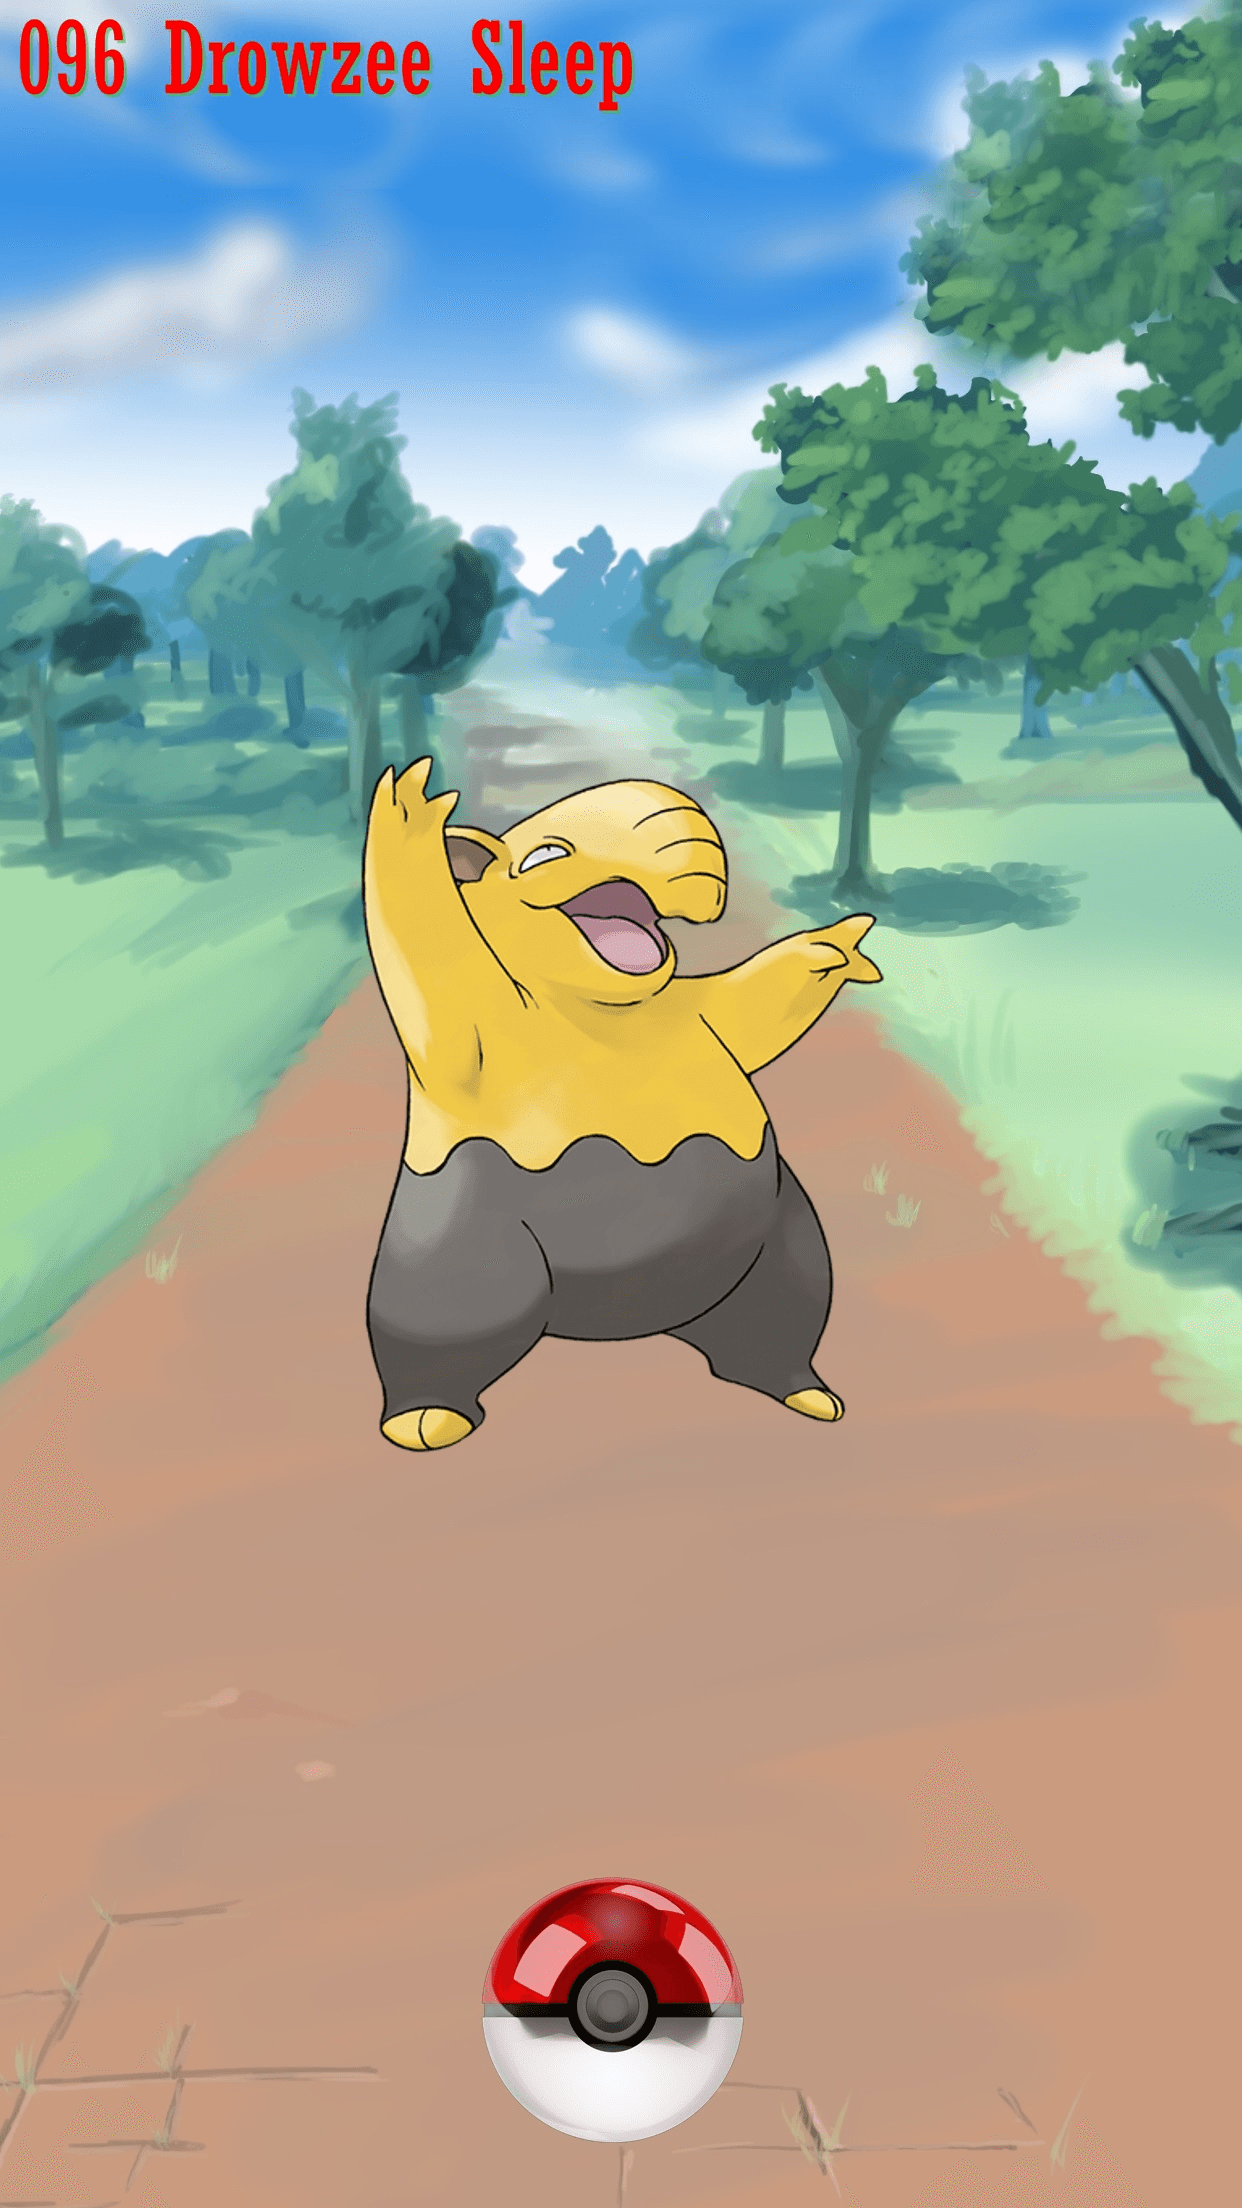 096 Street Pokeball Drowzee Sleep | Wallpaper